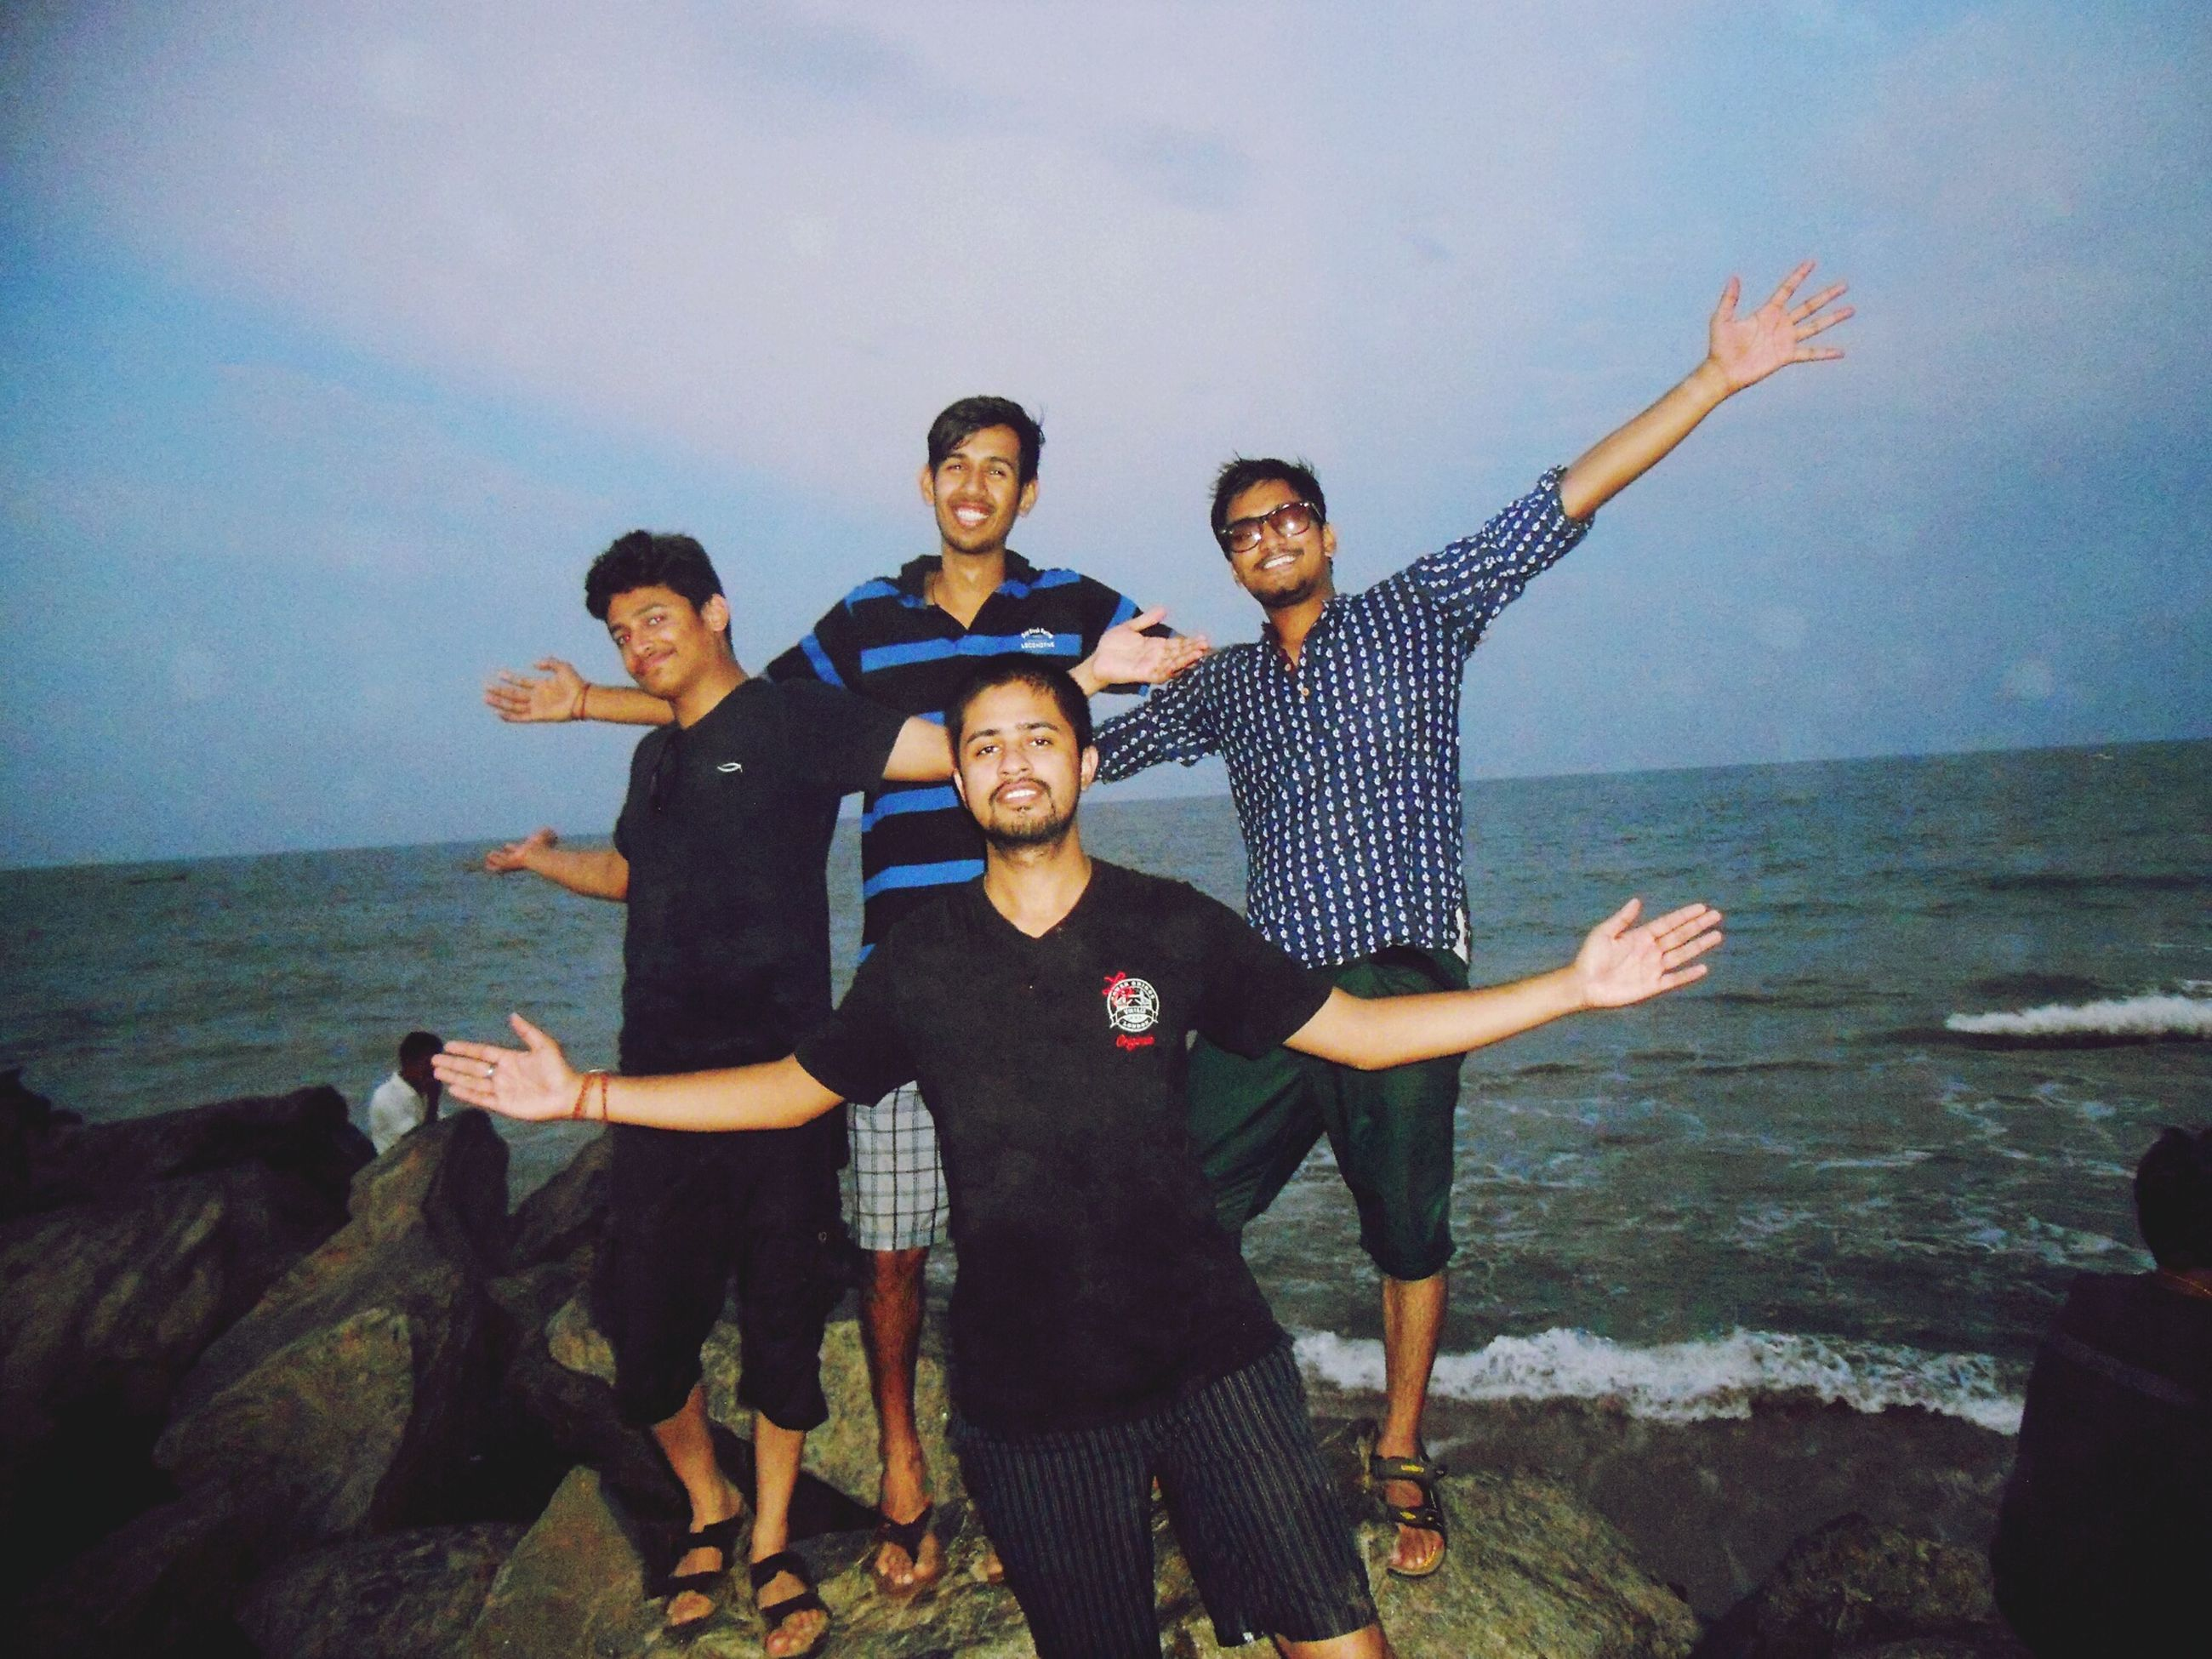 lifestyles, leisure activity, togetherness, young adult, water, young men, bonding, person, full length, sea, happiness, enjoyment, casual clothing, vacations, friendship, fun, love